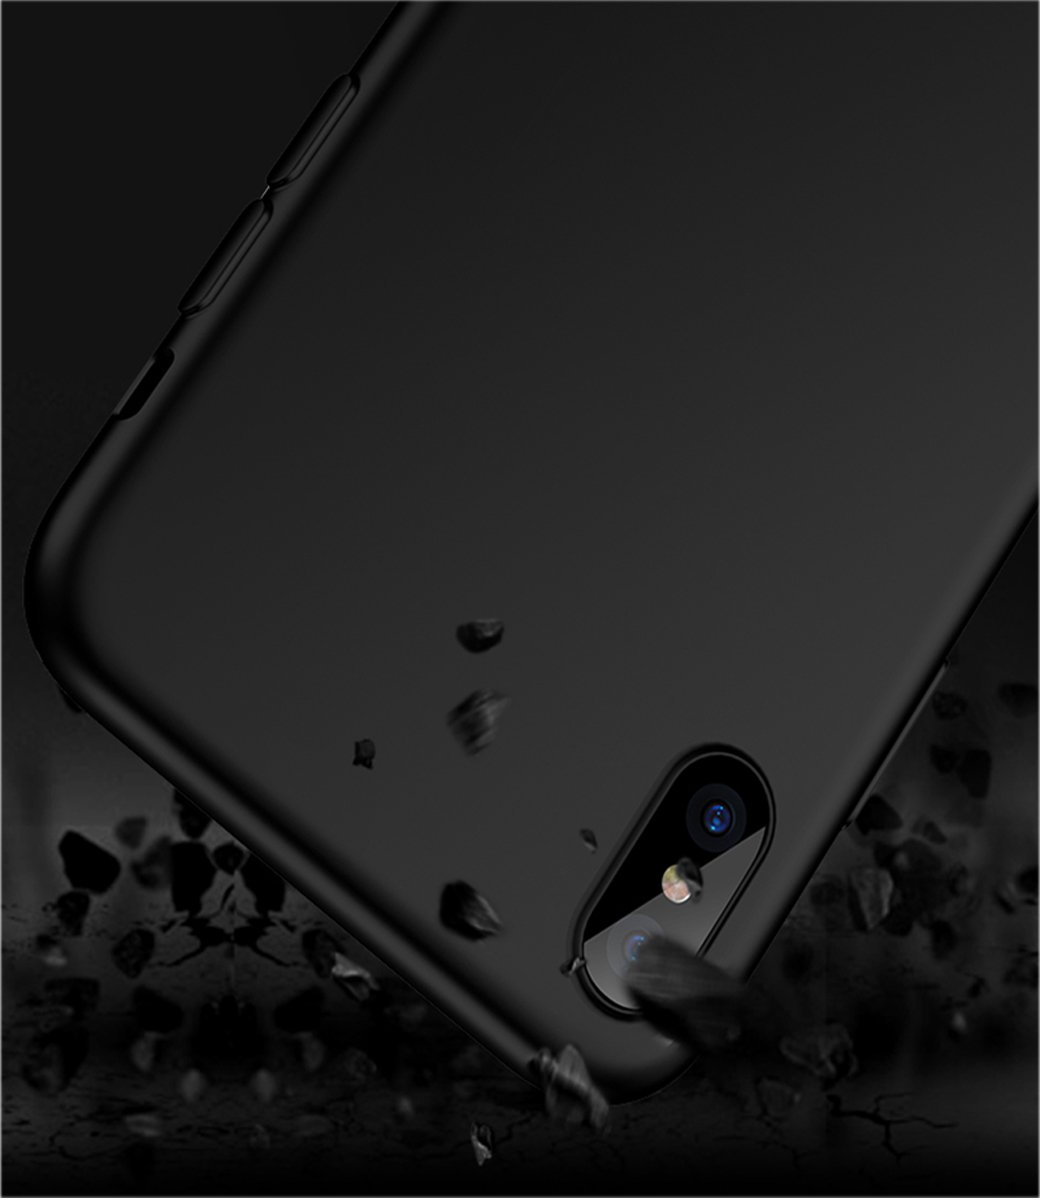 iPhone X Case, Scratch Resistant and Shock Absorption Protective iPhone Case, Slim Cell Phone Cover for iPhone X (Black)